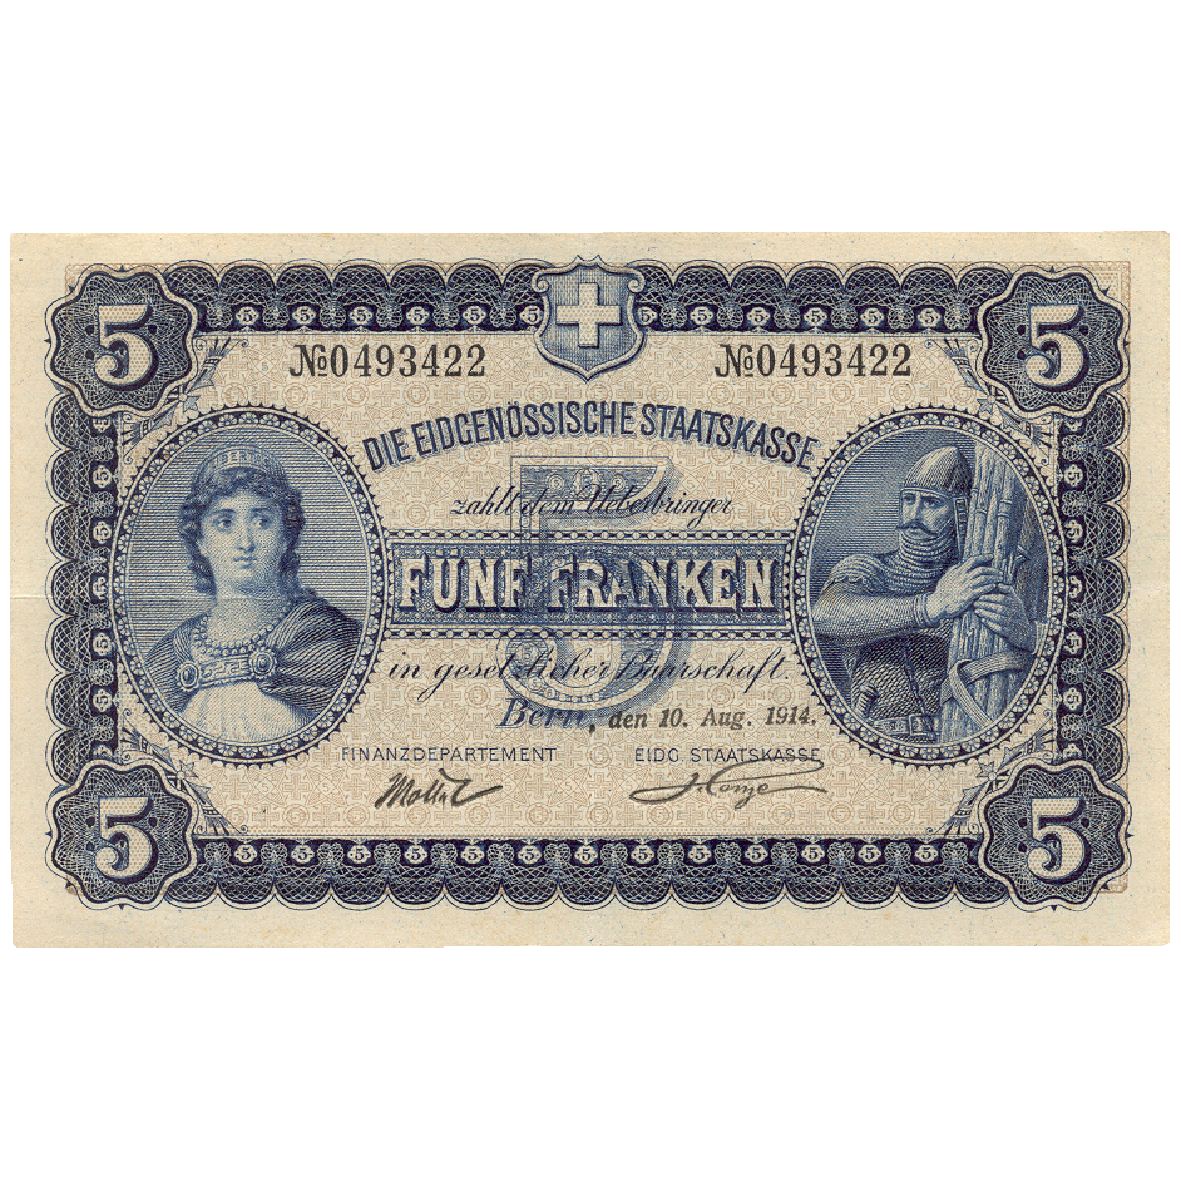 Swiss Confederation, Cashier's Bill worth 5 Francs 1914 (in Circulation 1914-1926) (obverse)